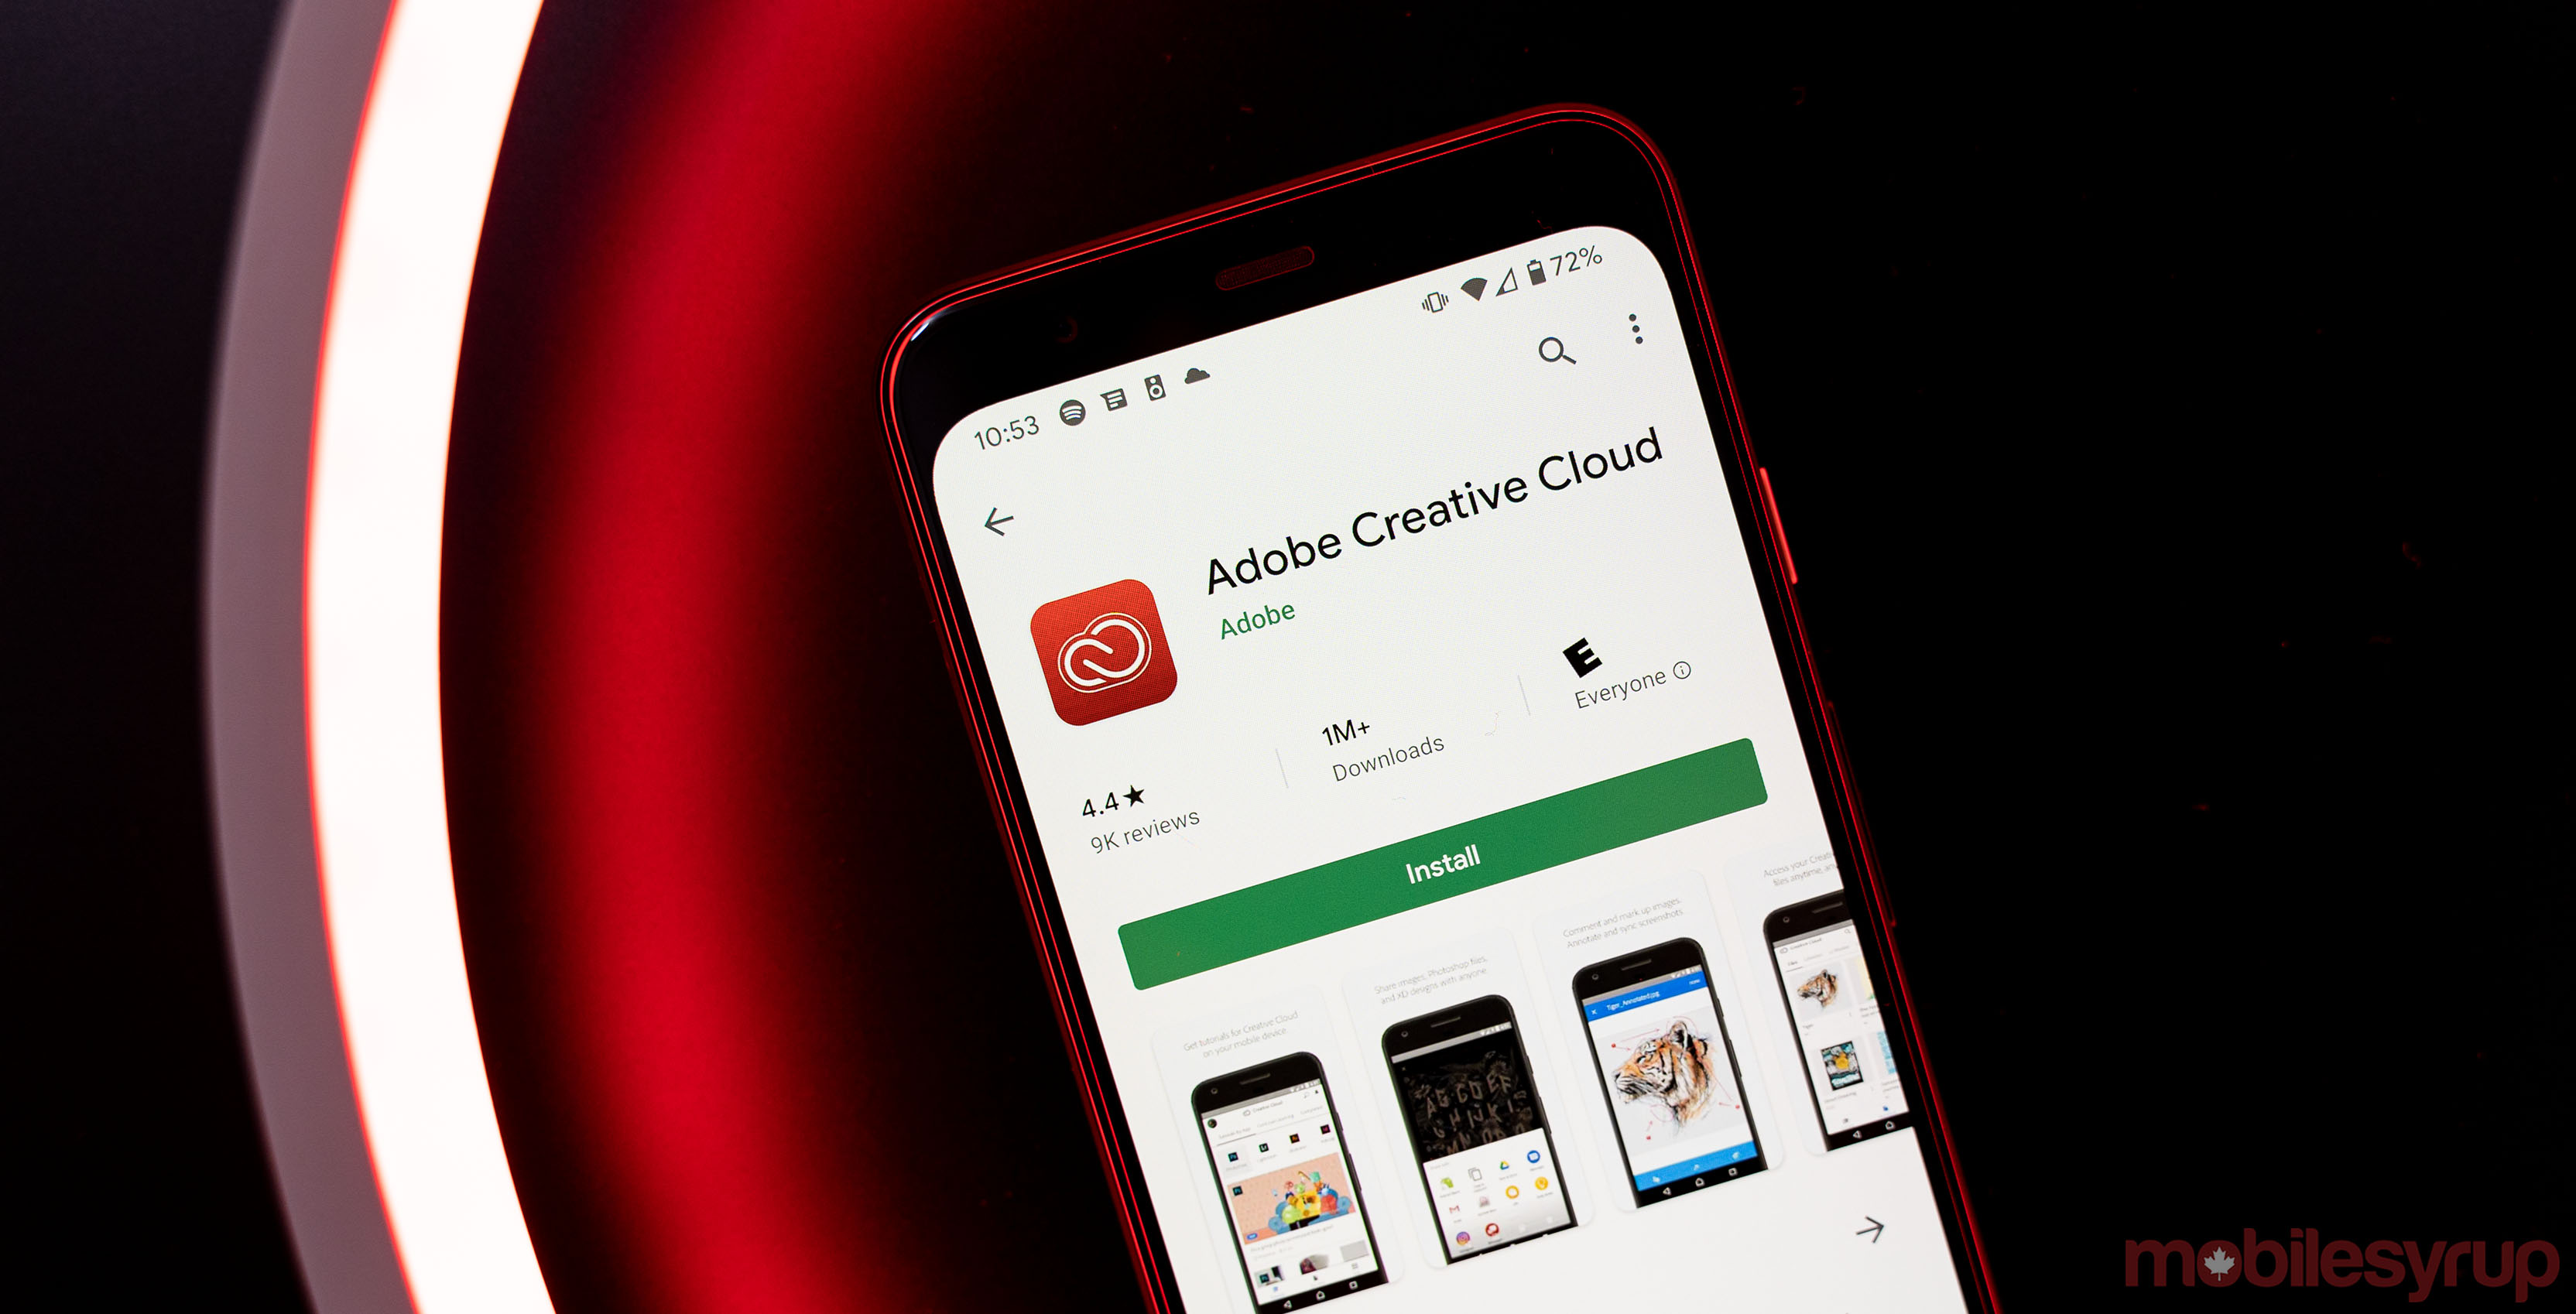 Adobe Creative Cloud app on Android